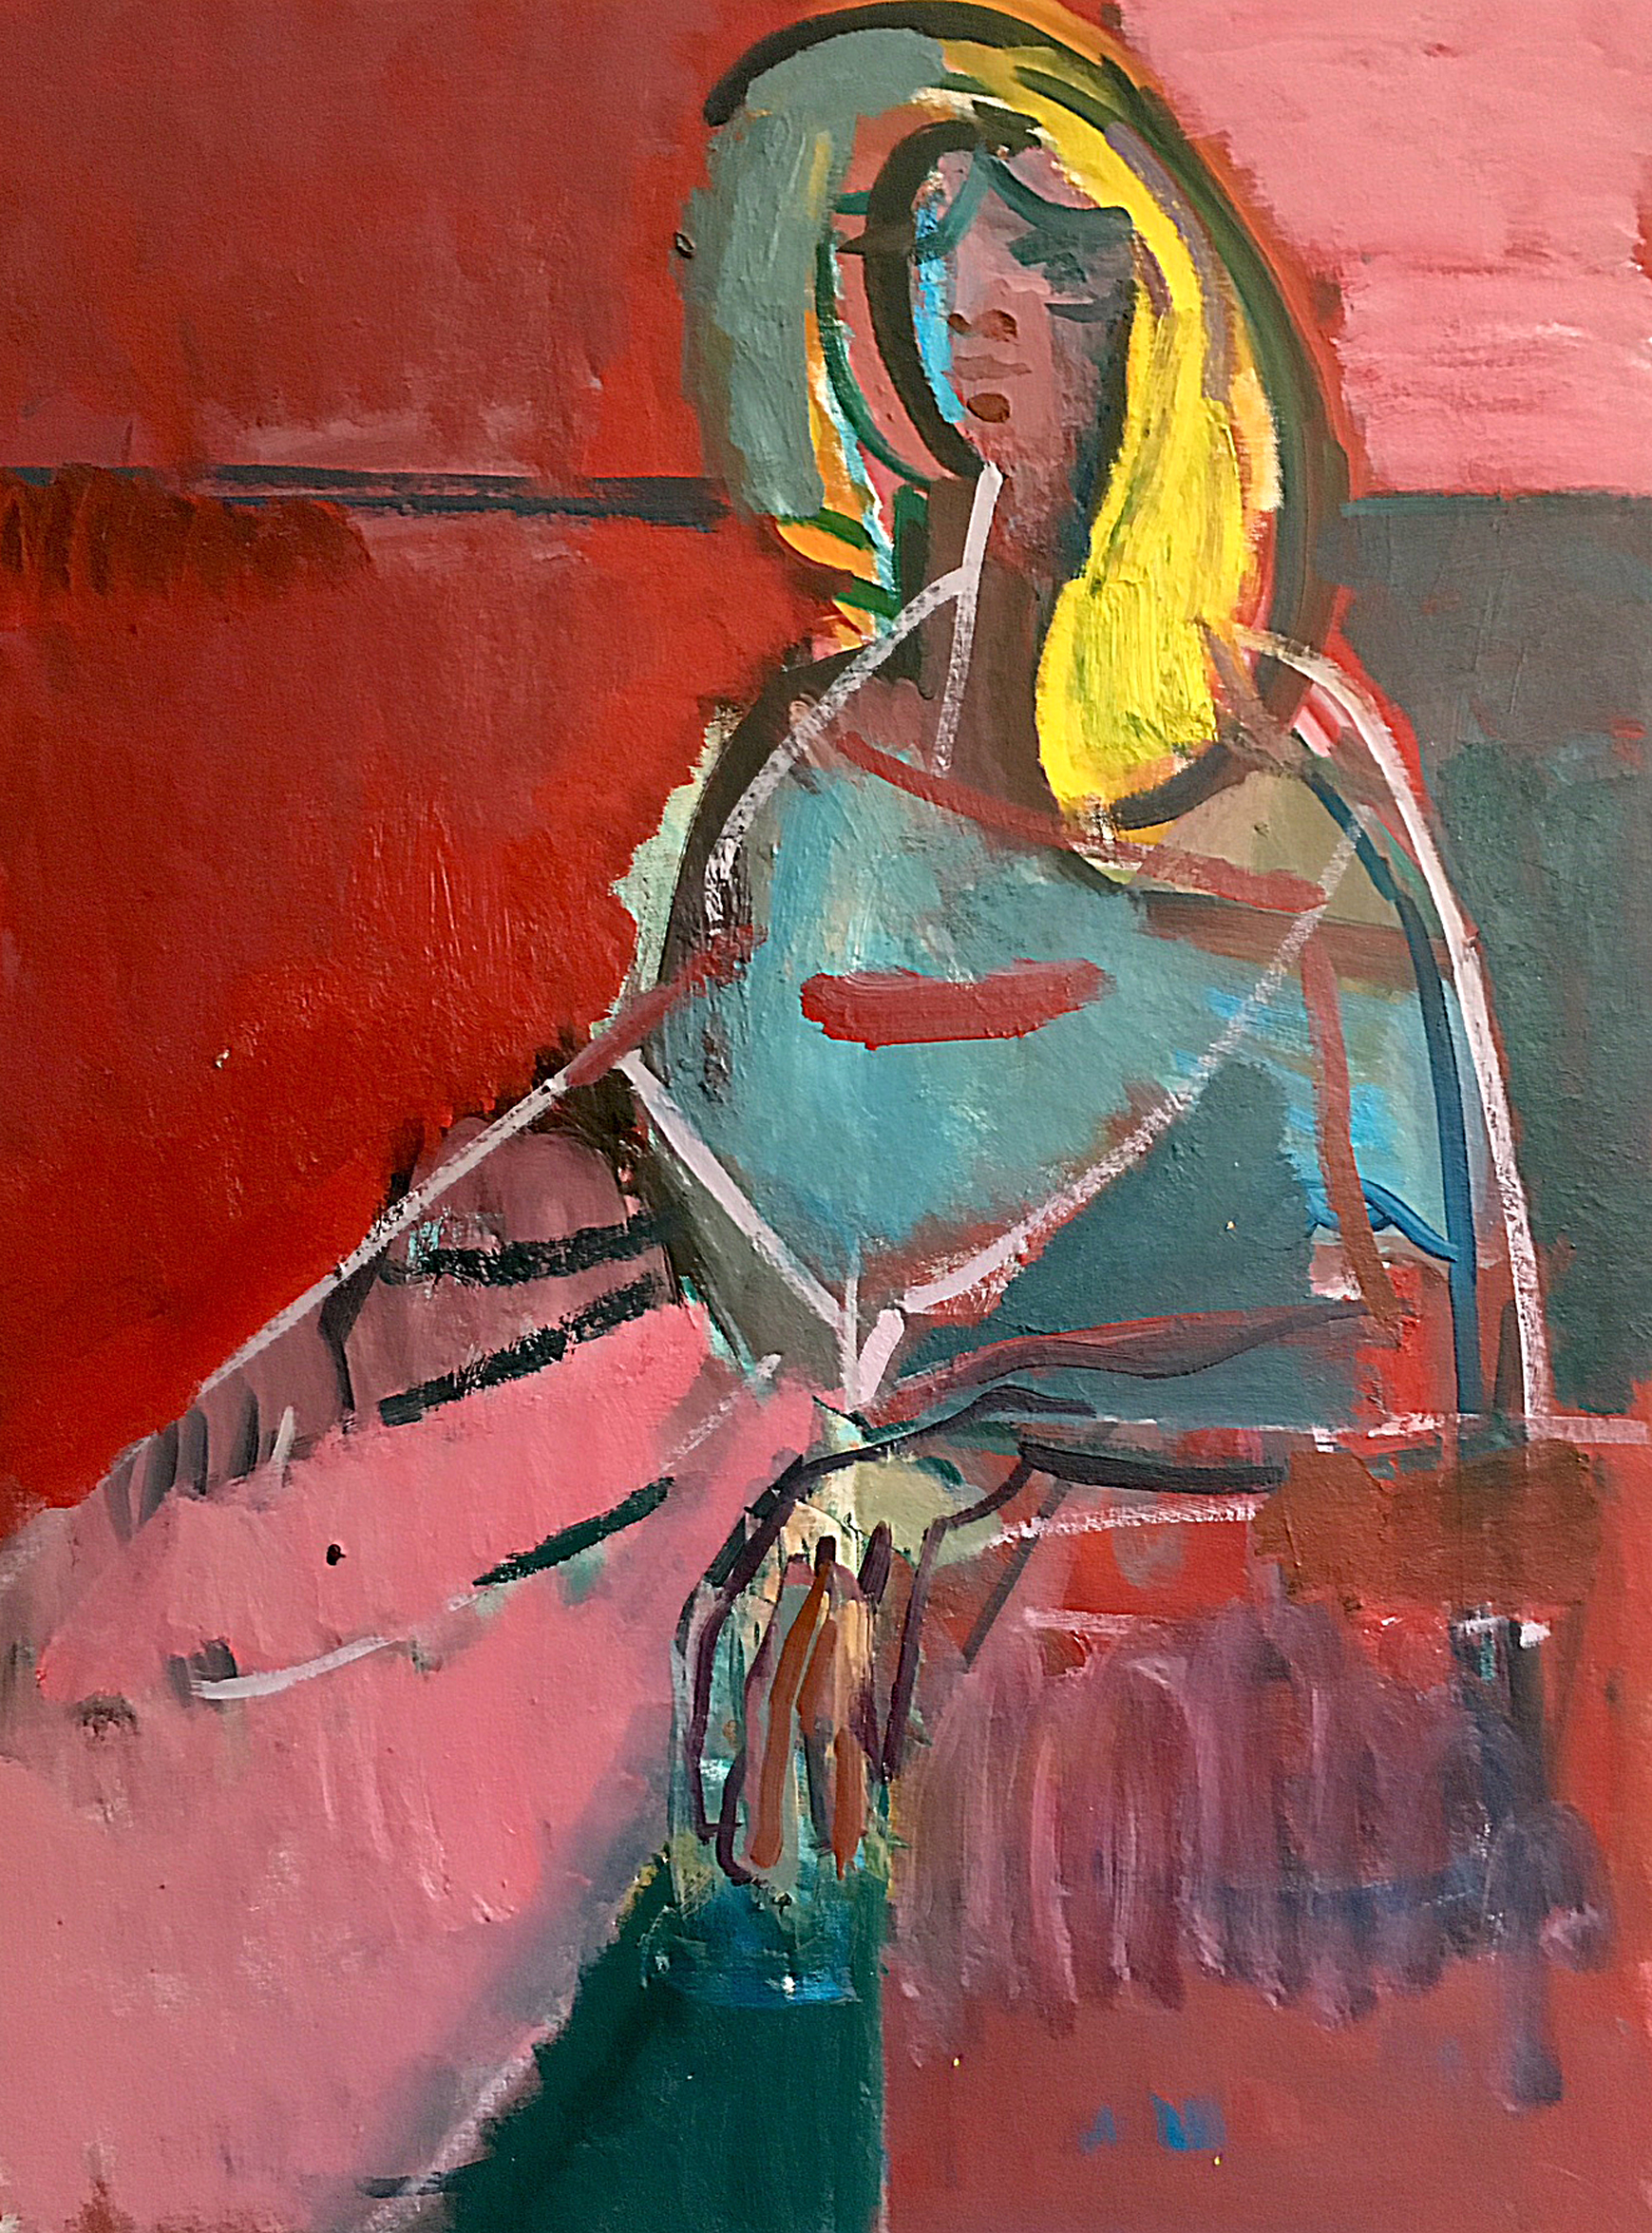 Title: Anastasia Reclining  Medium: Oil on canvas  Size: 102 x 76 cm  Price: £2500